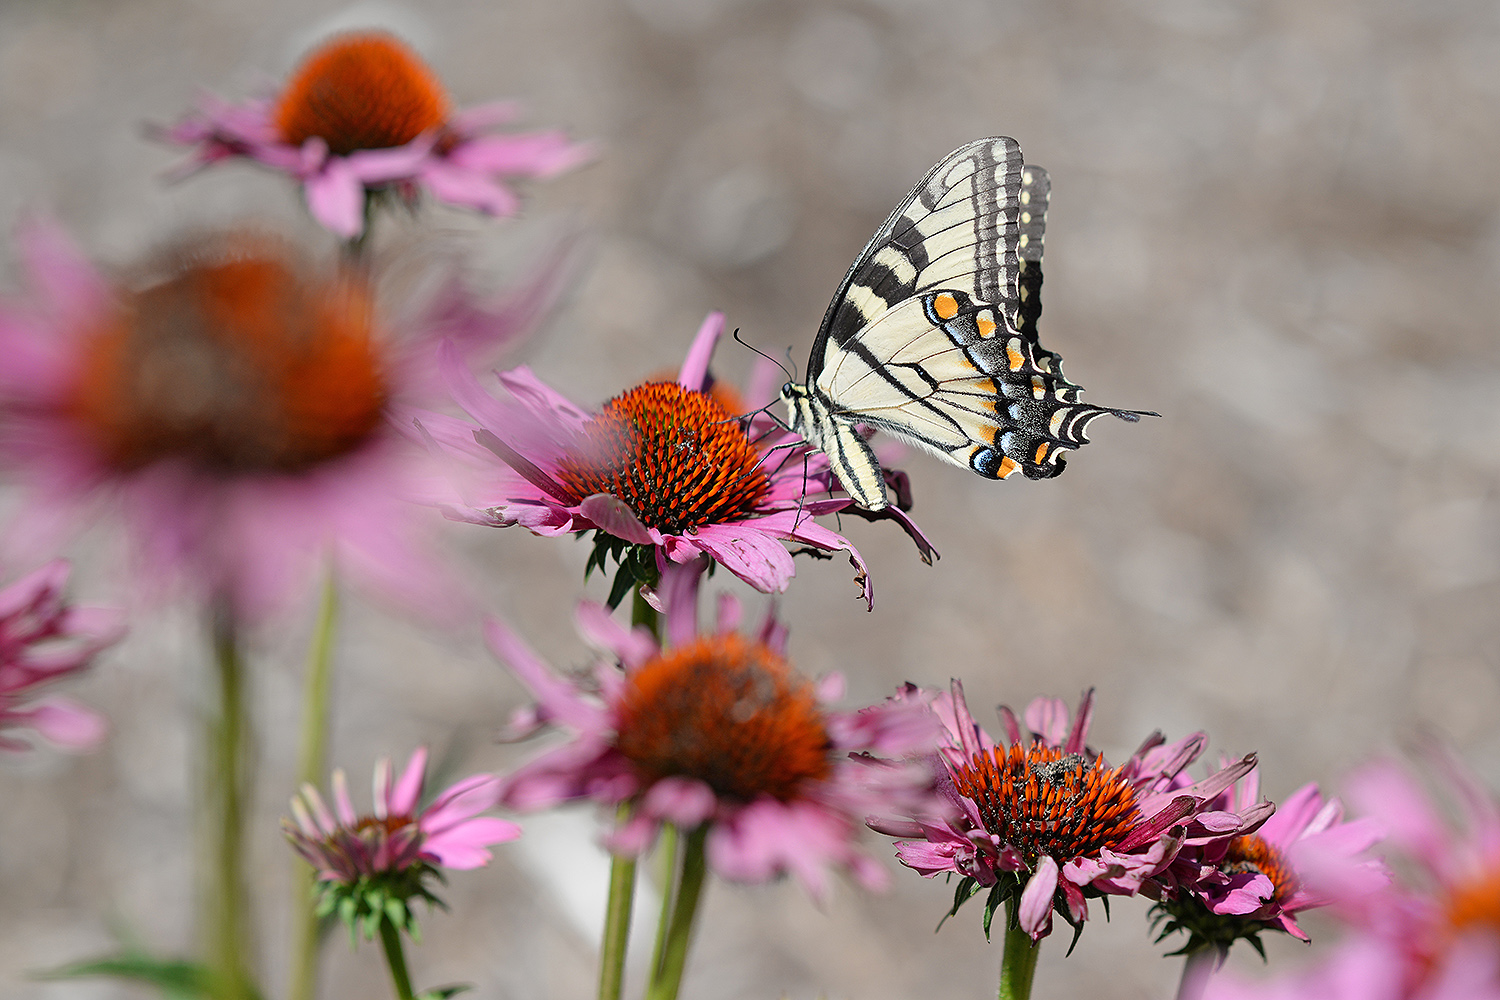 A swallowtail butterfly sips nectar from a purple cone flower near Allbritton Hall.